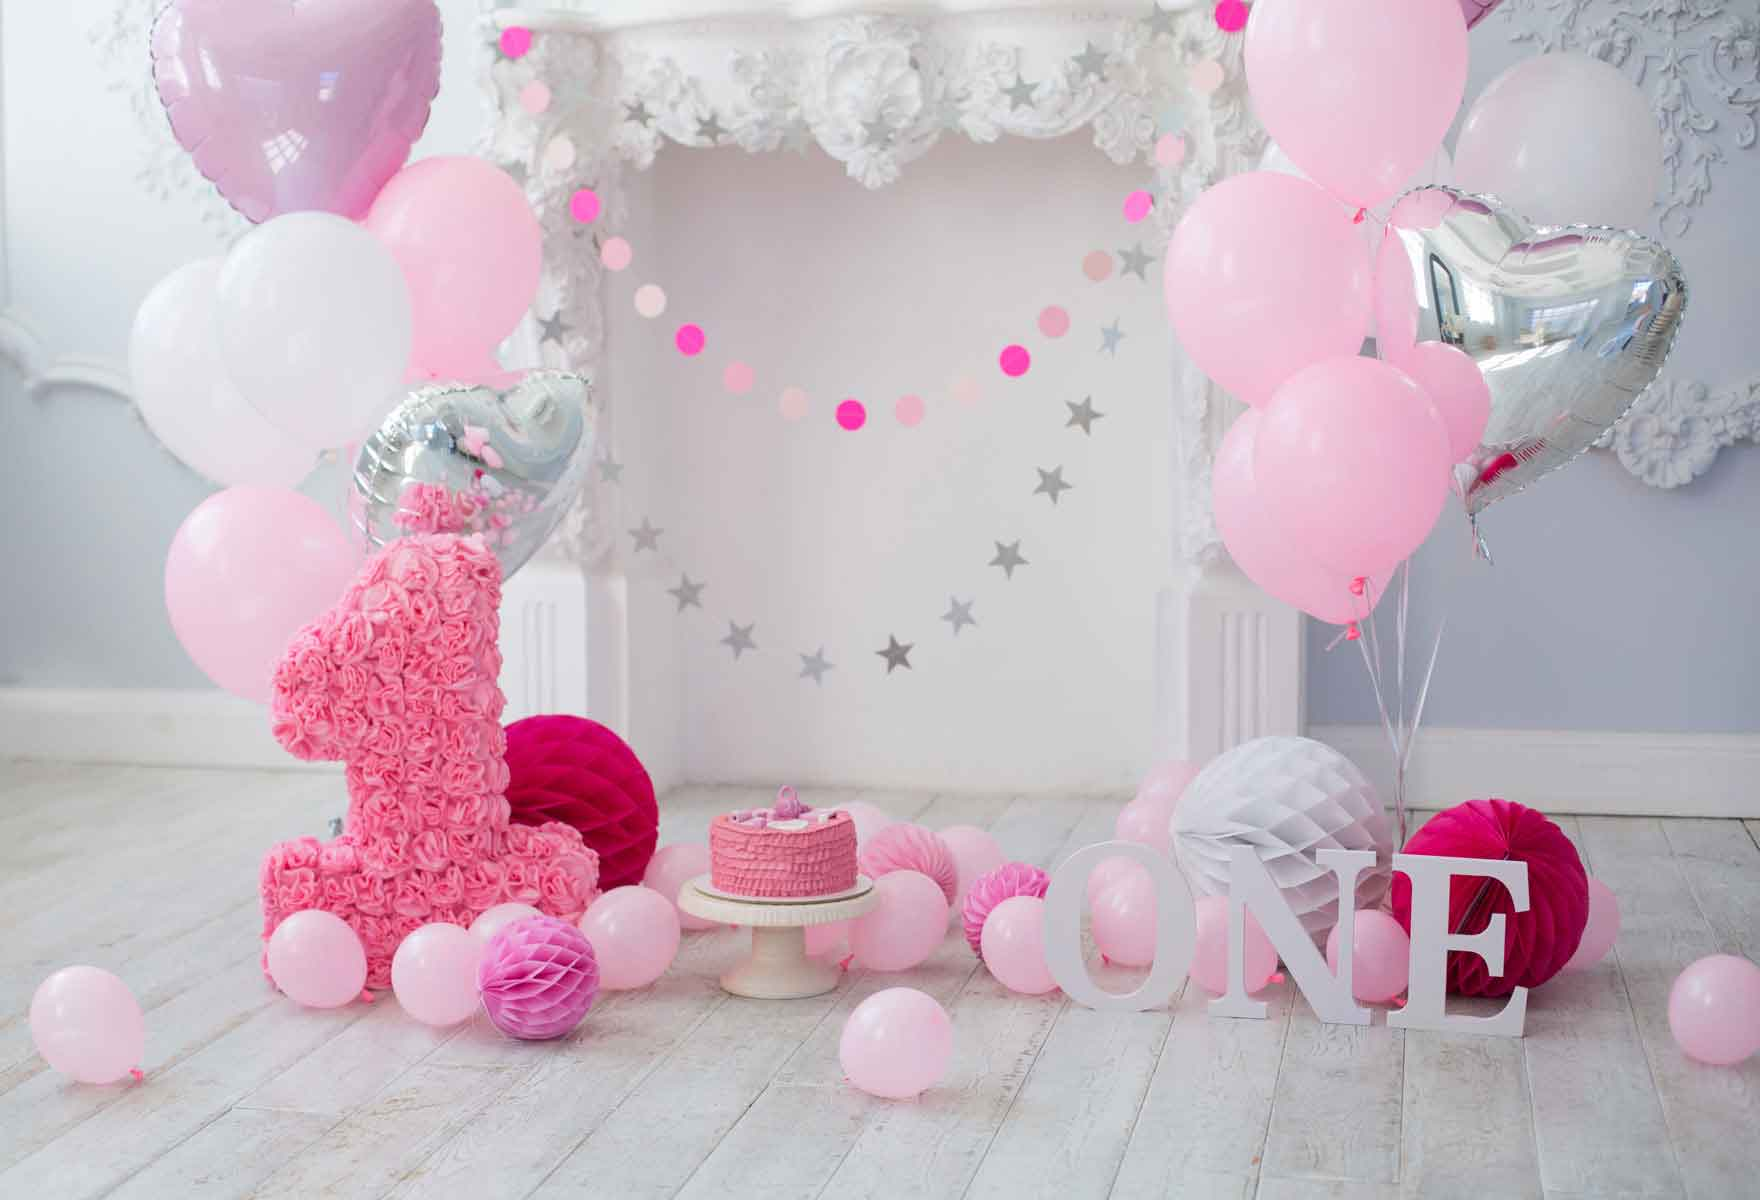 Fox Rolled Pink Balloons Girl Birthday Cake Smash Vinyl Backdrop-Foxbackdrop